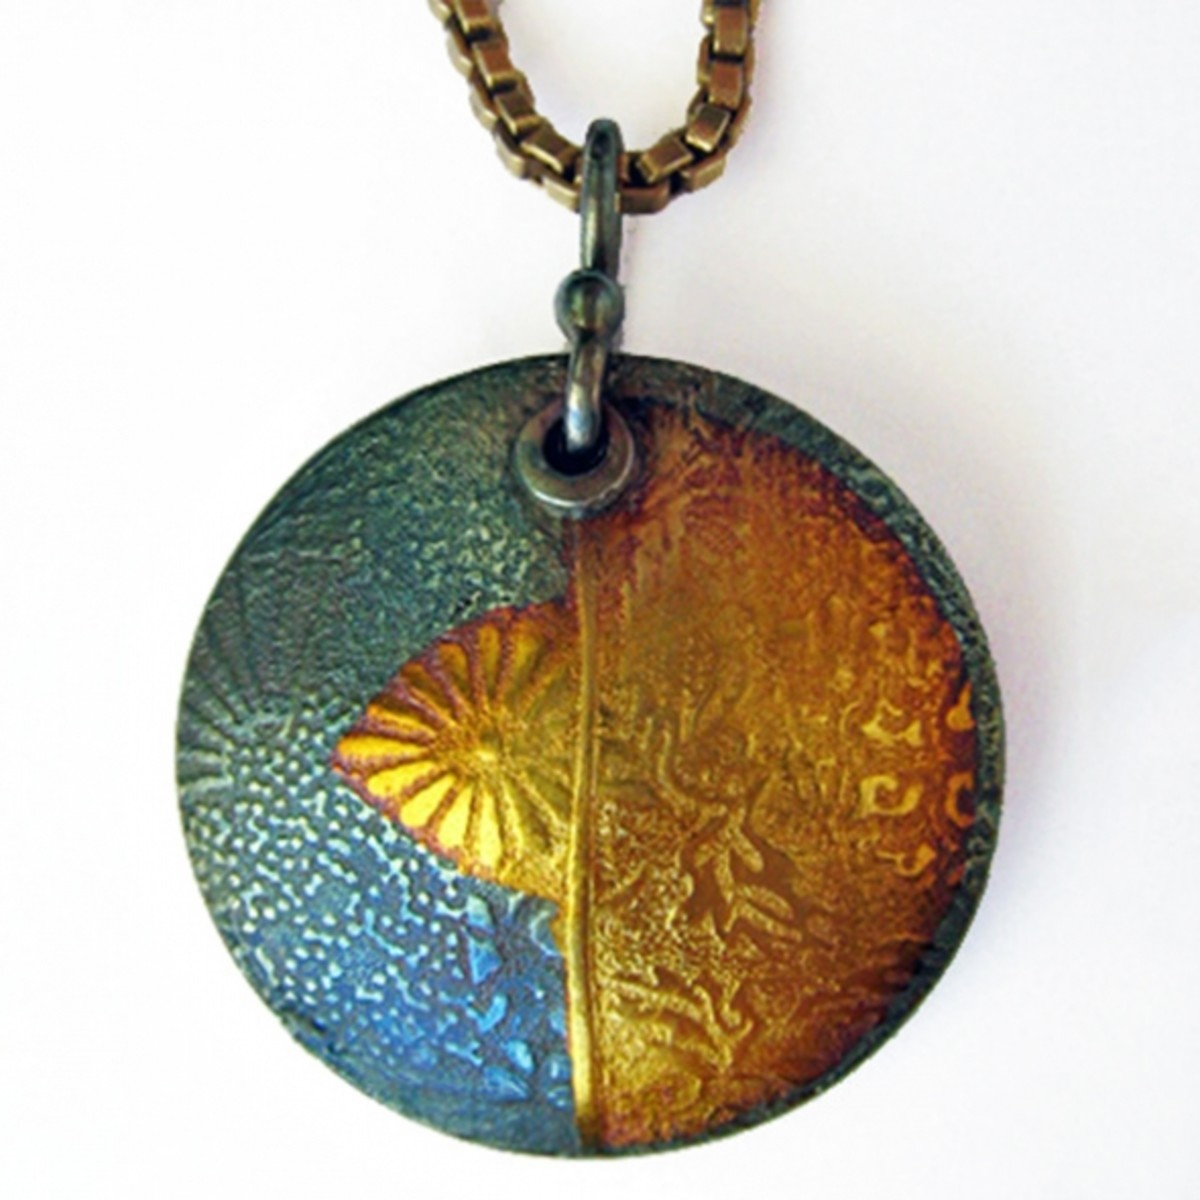 Fine silver PMC lentil pendant with 24k gold foil keum-boo and iridescent LOS patina. Front textured with a tear-away texture made from collaged images.